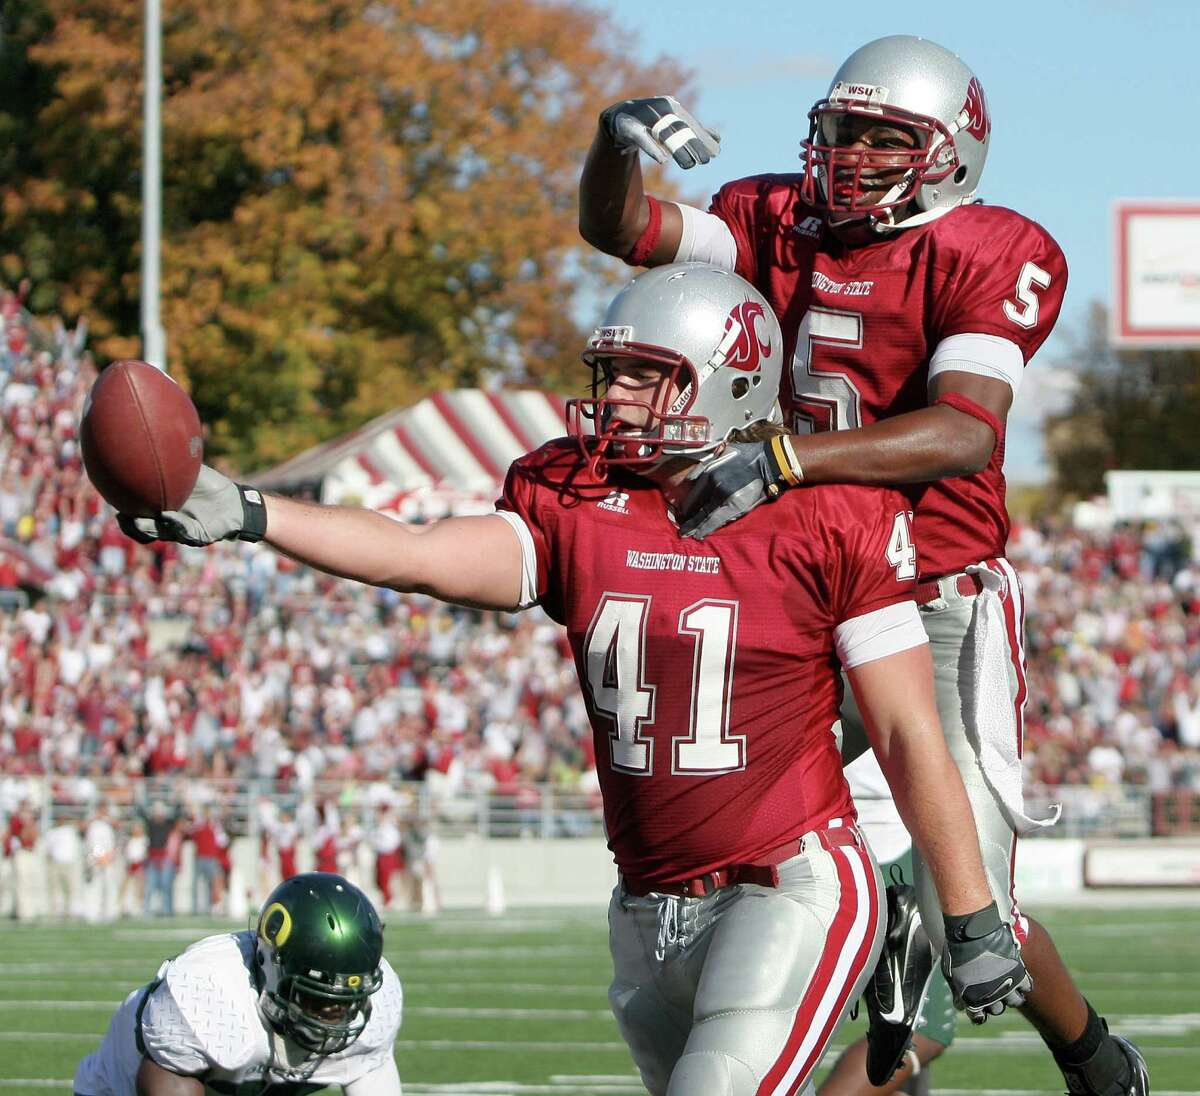 Tight end Jed Collins #41 of the Washington State Cougars celebrates with Michael Bumbus #5 after scoring a touchdown in the first half against the Oregon Ducks on October 21, 2006 at Martin Stadium in Pullman.